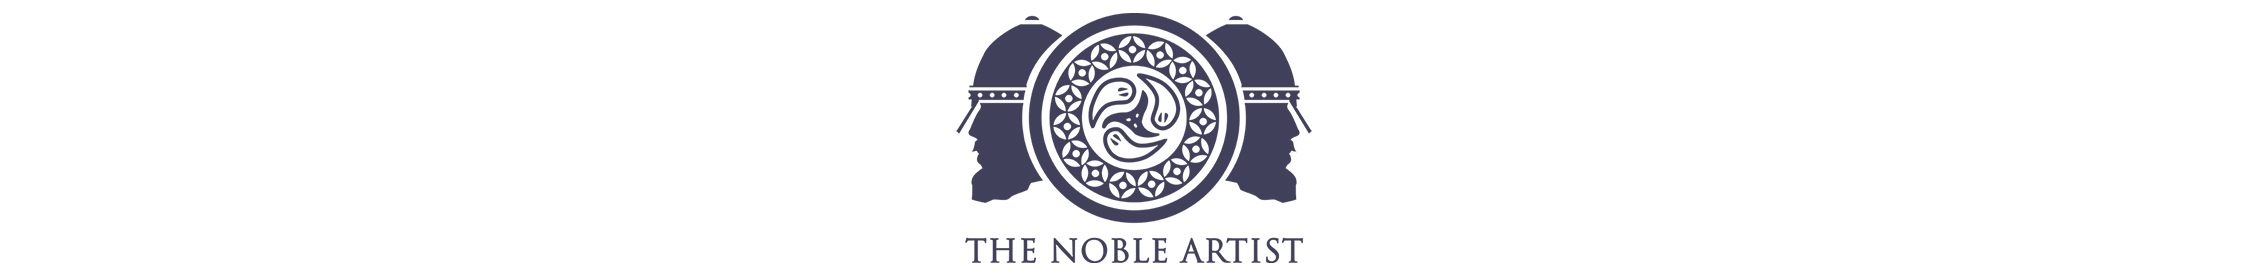 The Noble Artist